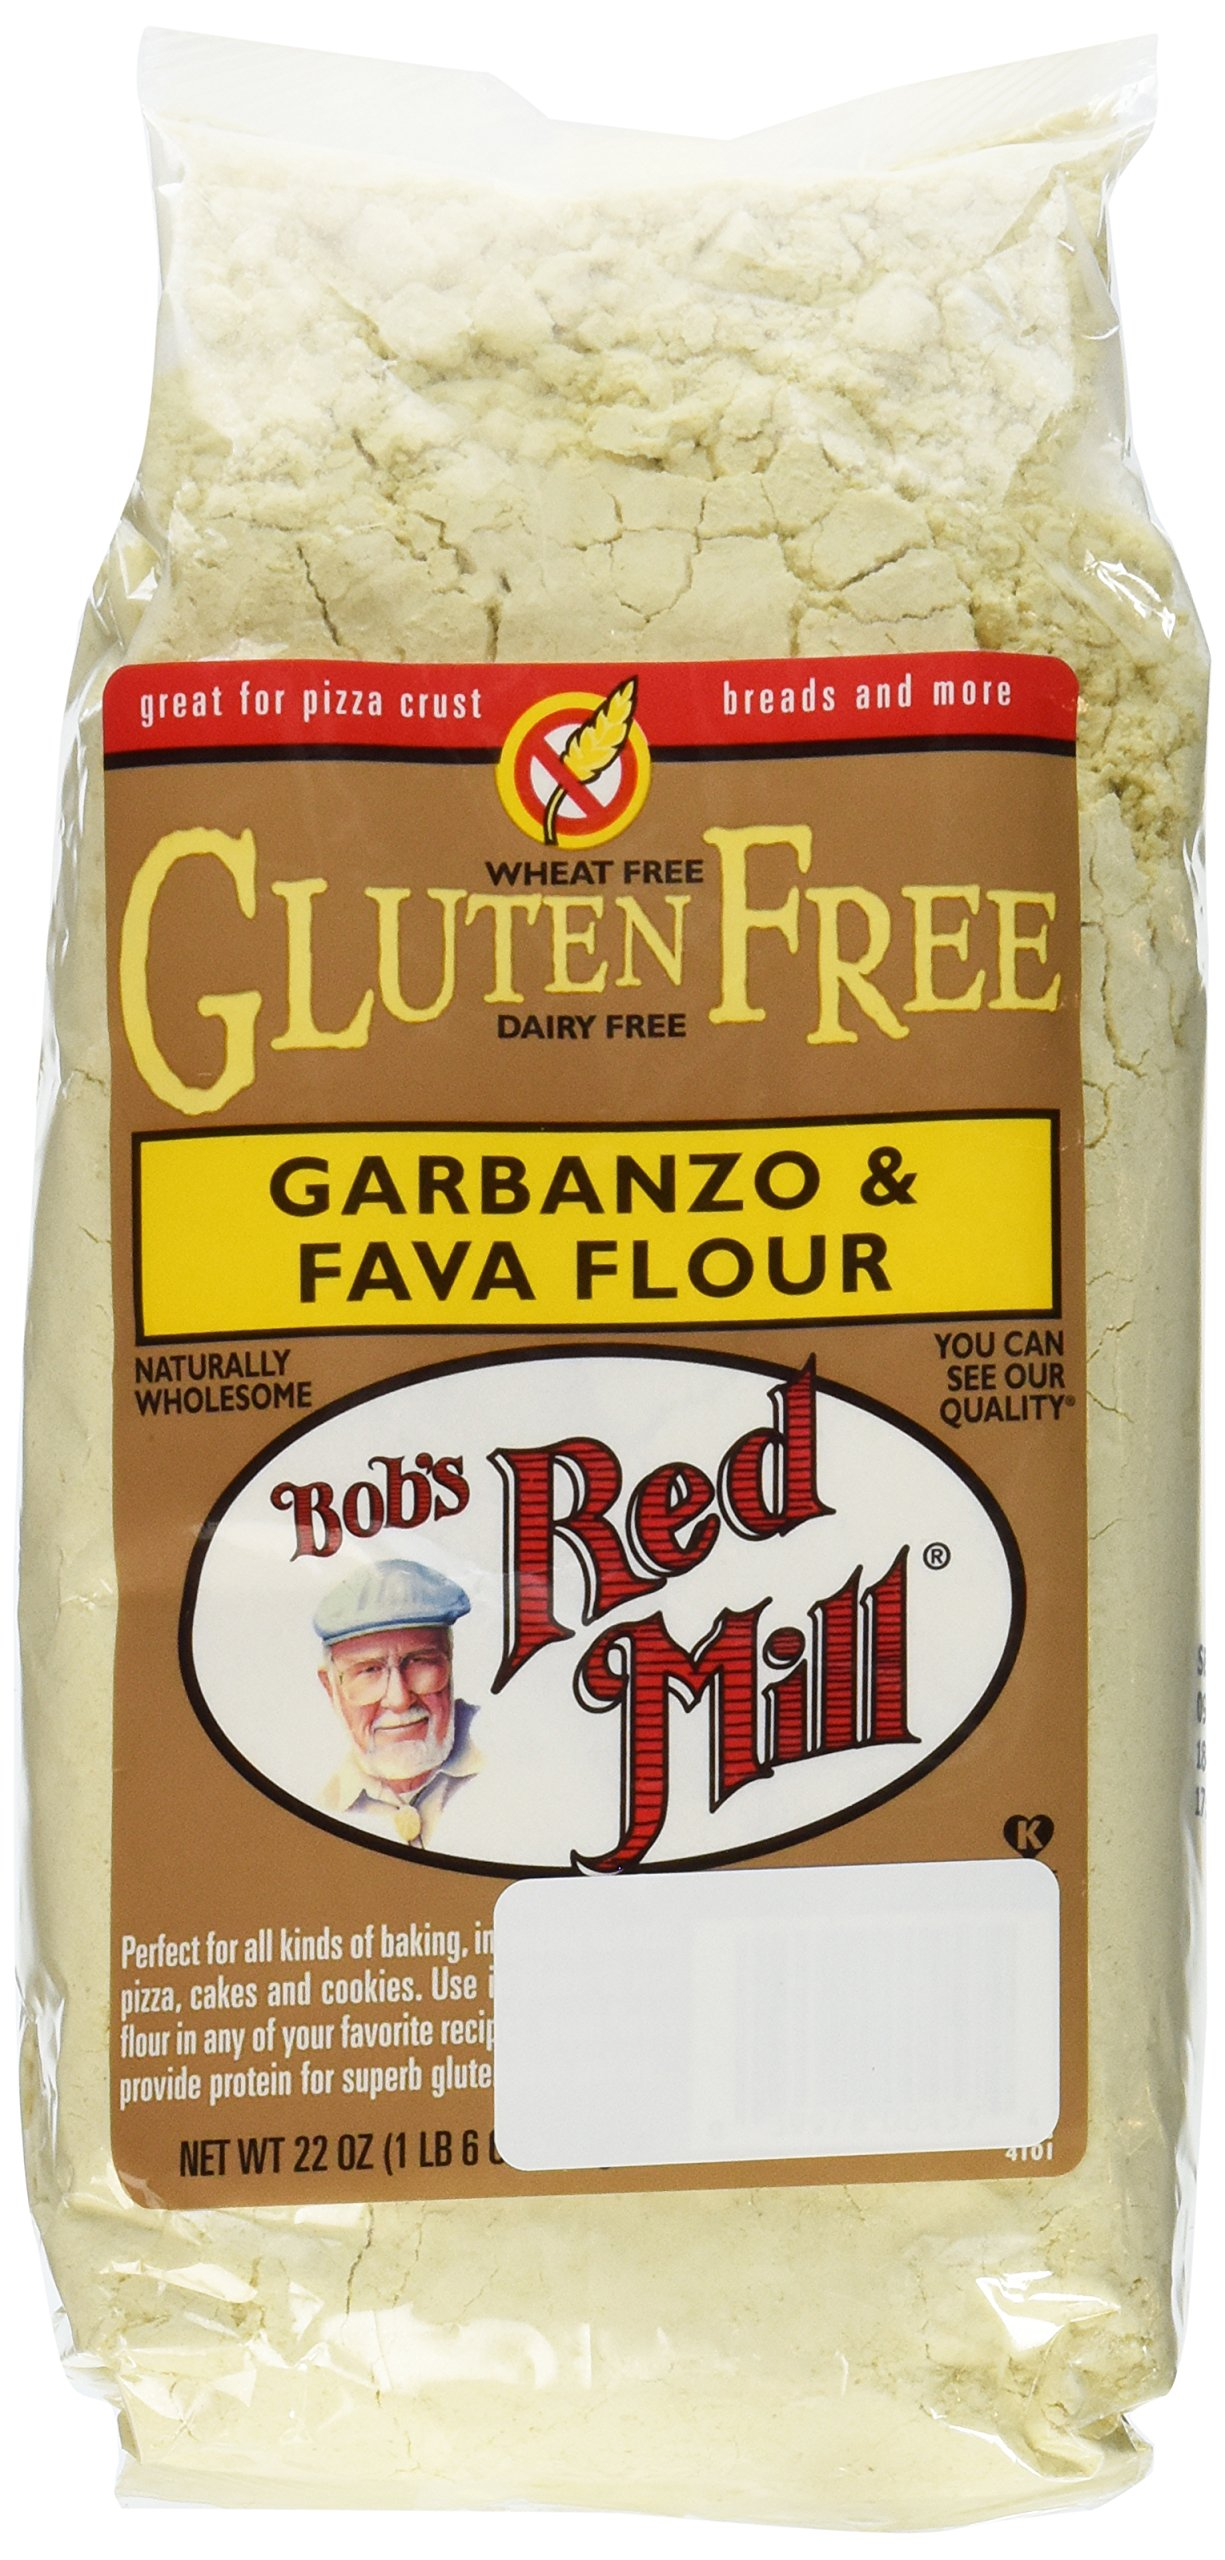 Bob's Red Mill Gluten Free Garbanzo Fava Flour, 22 Ounce (Pack of 2)